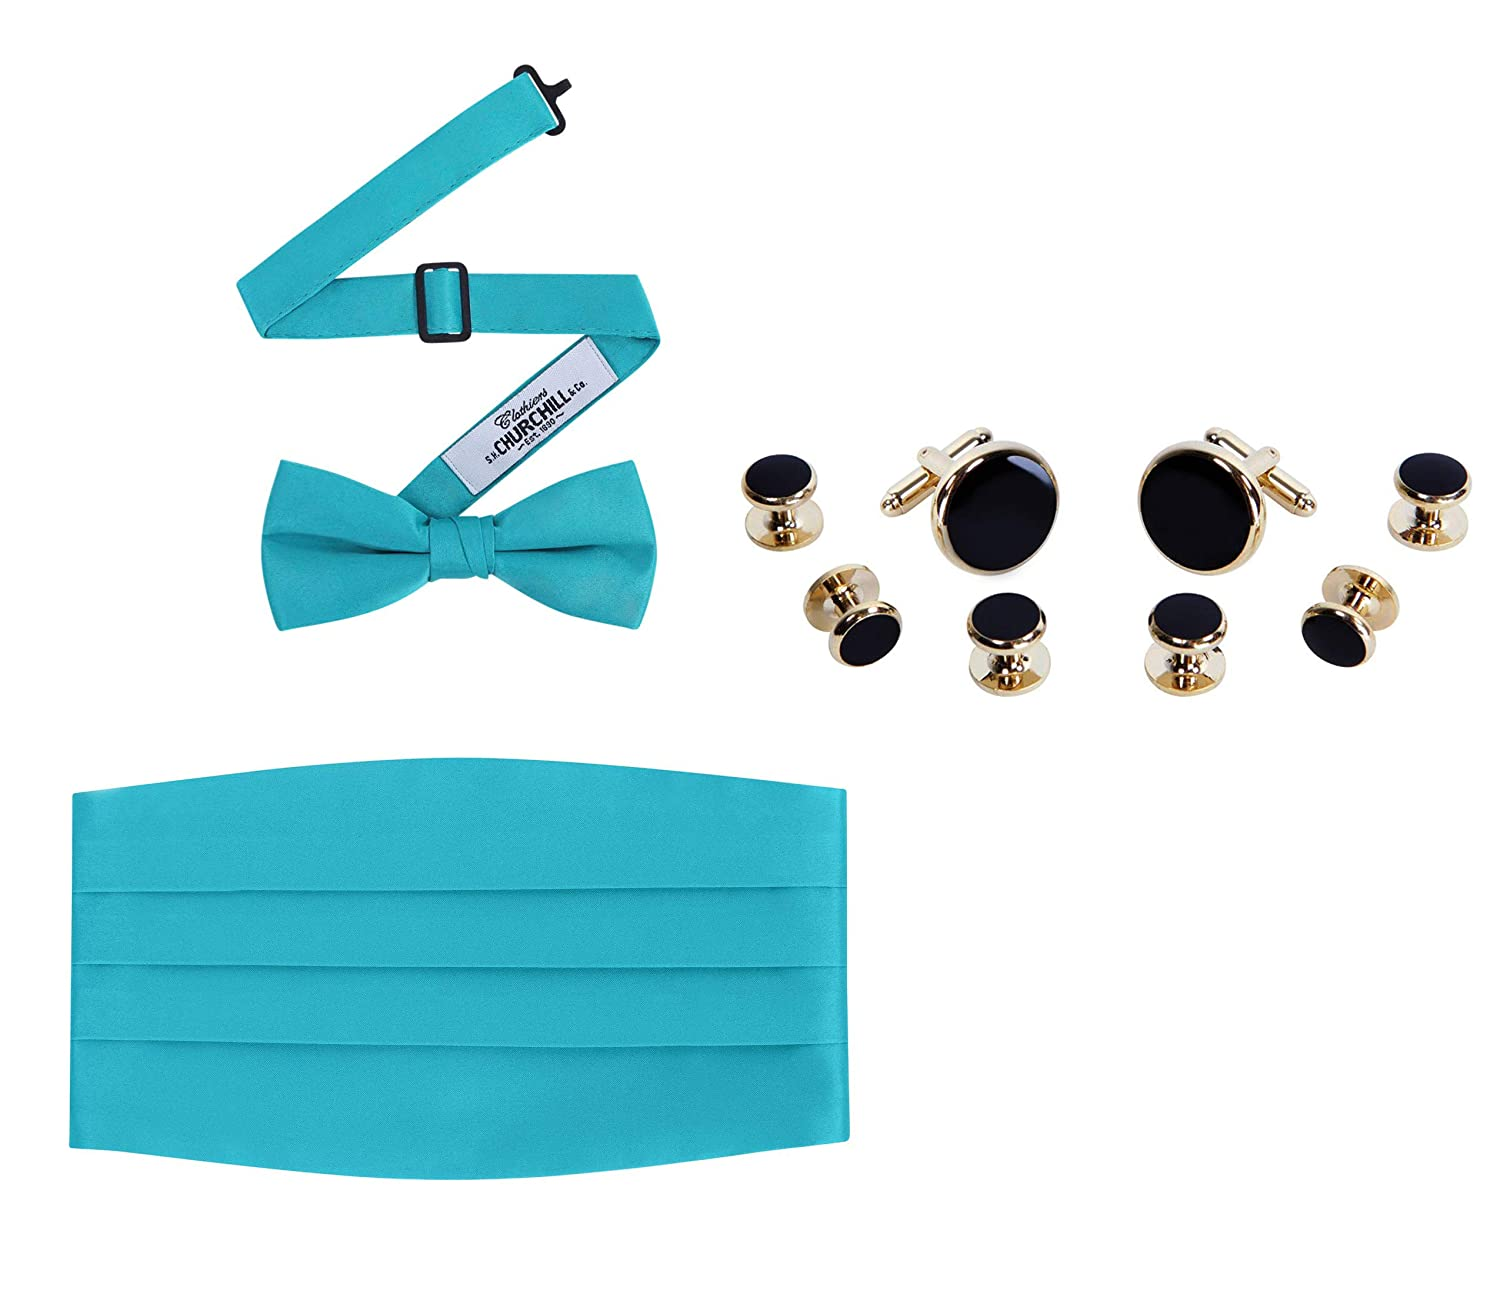 Gold Trim Cufflinks /& Studs Set Cummerbund Bow Tie